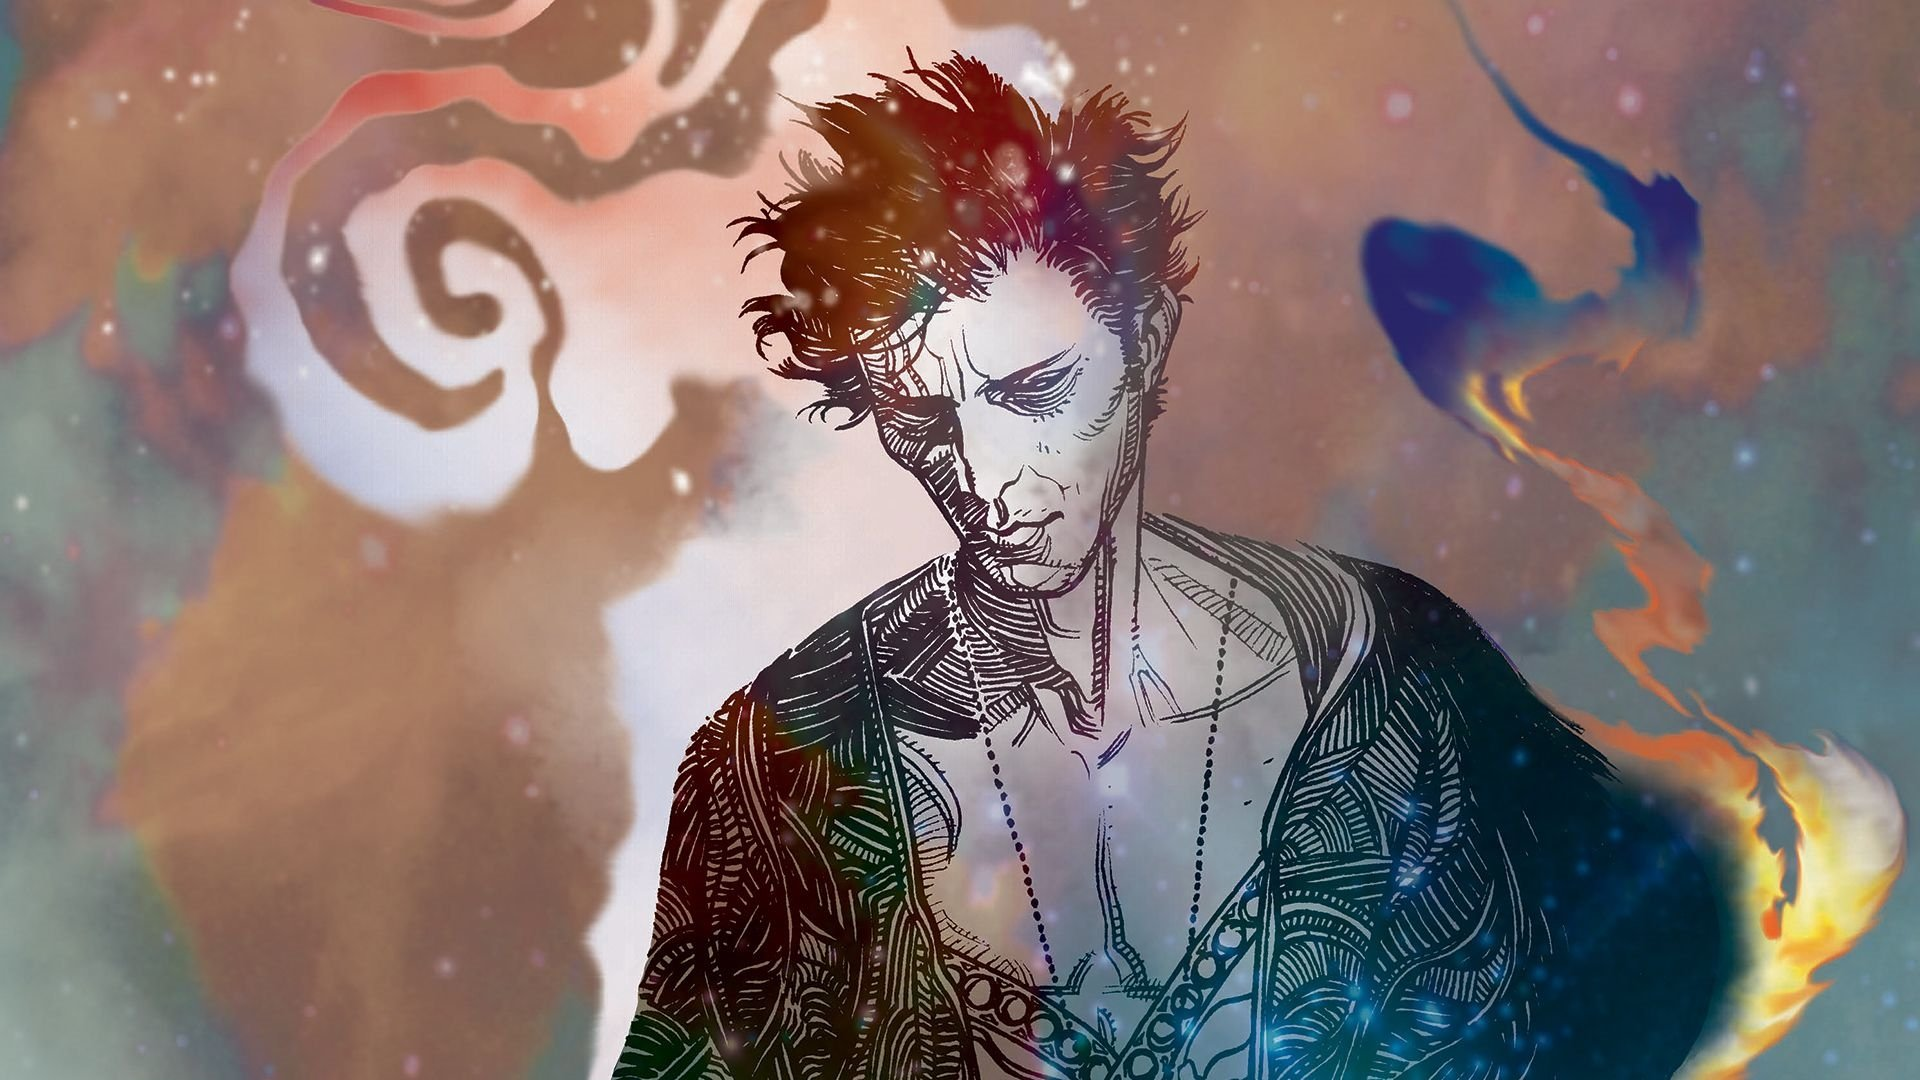 The Sandman: Overture HD Wallpaper | Background Image | 1920x1080 | ID:671029 - Wallpaper Abyss